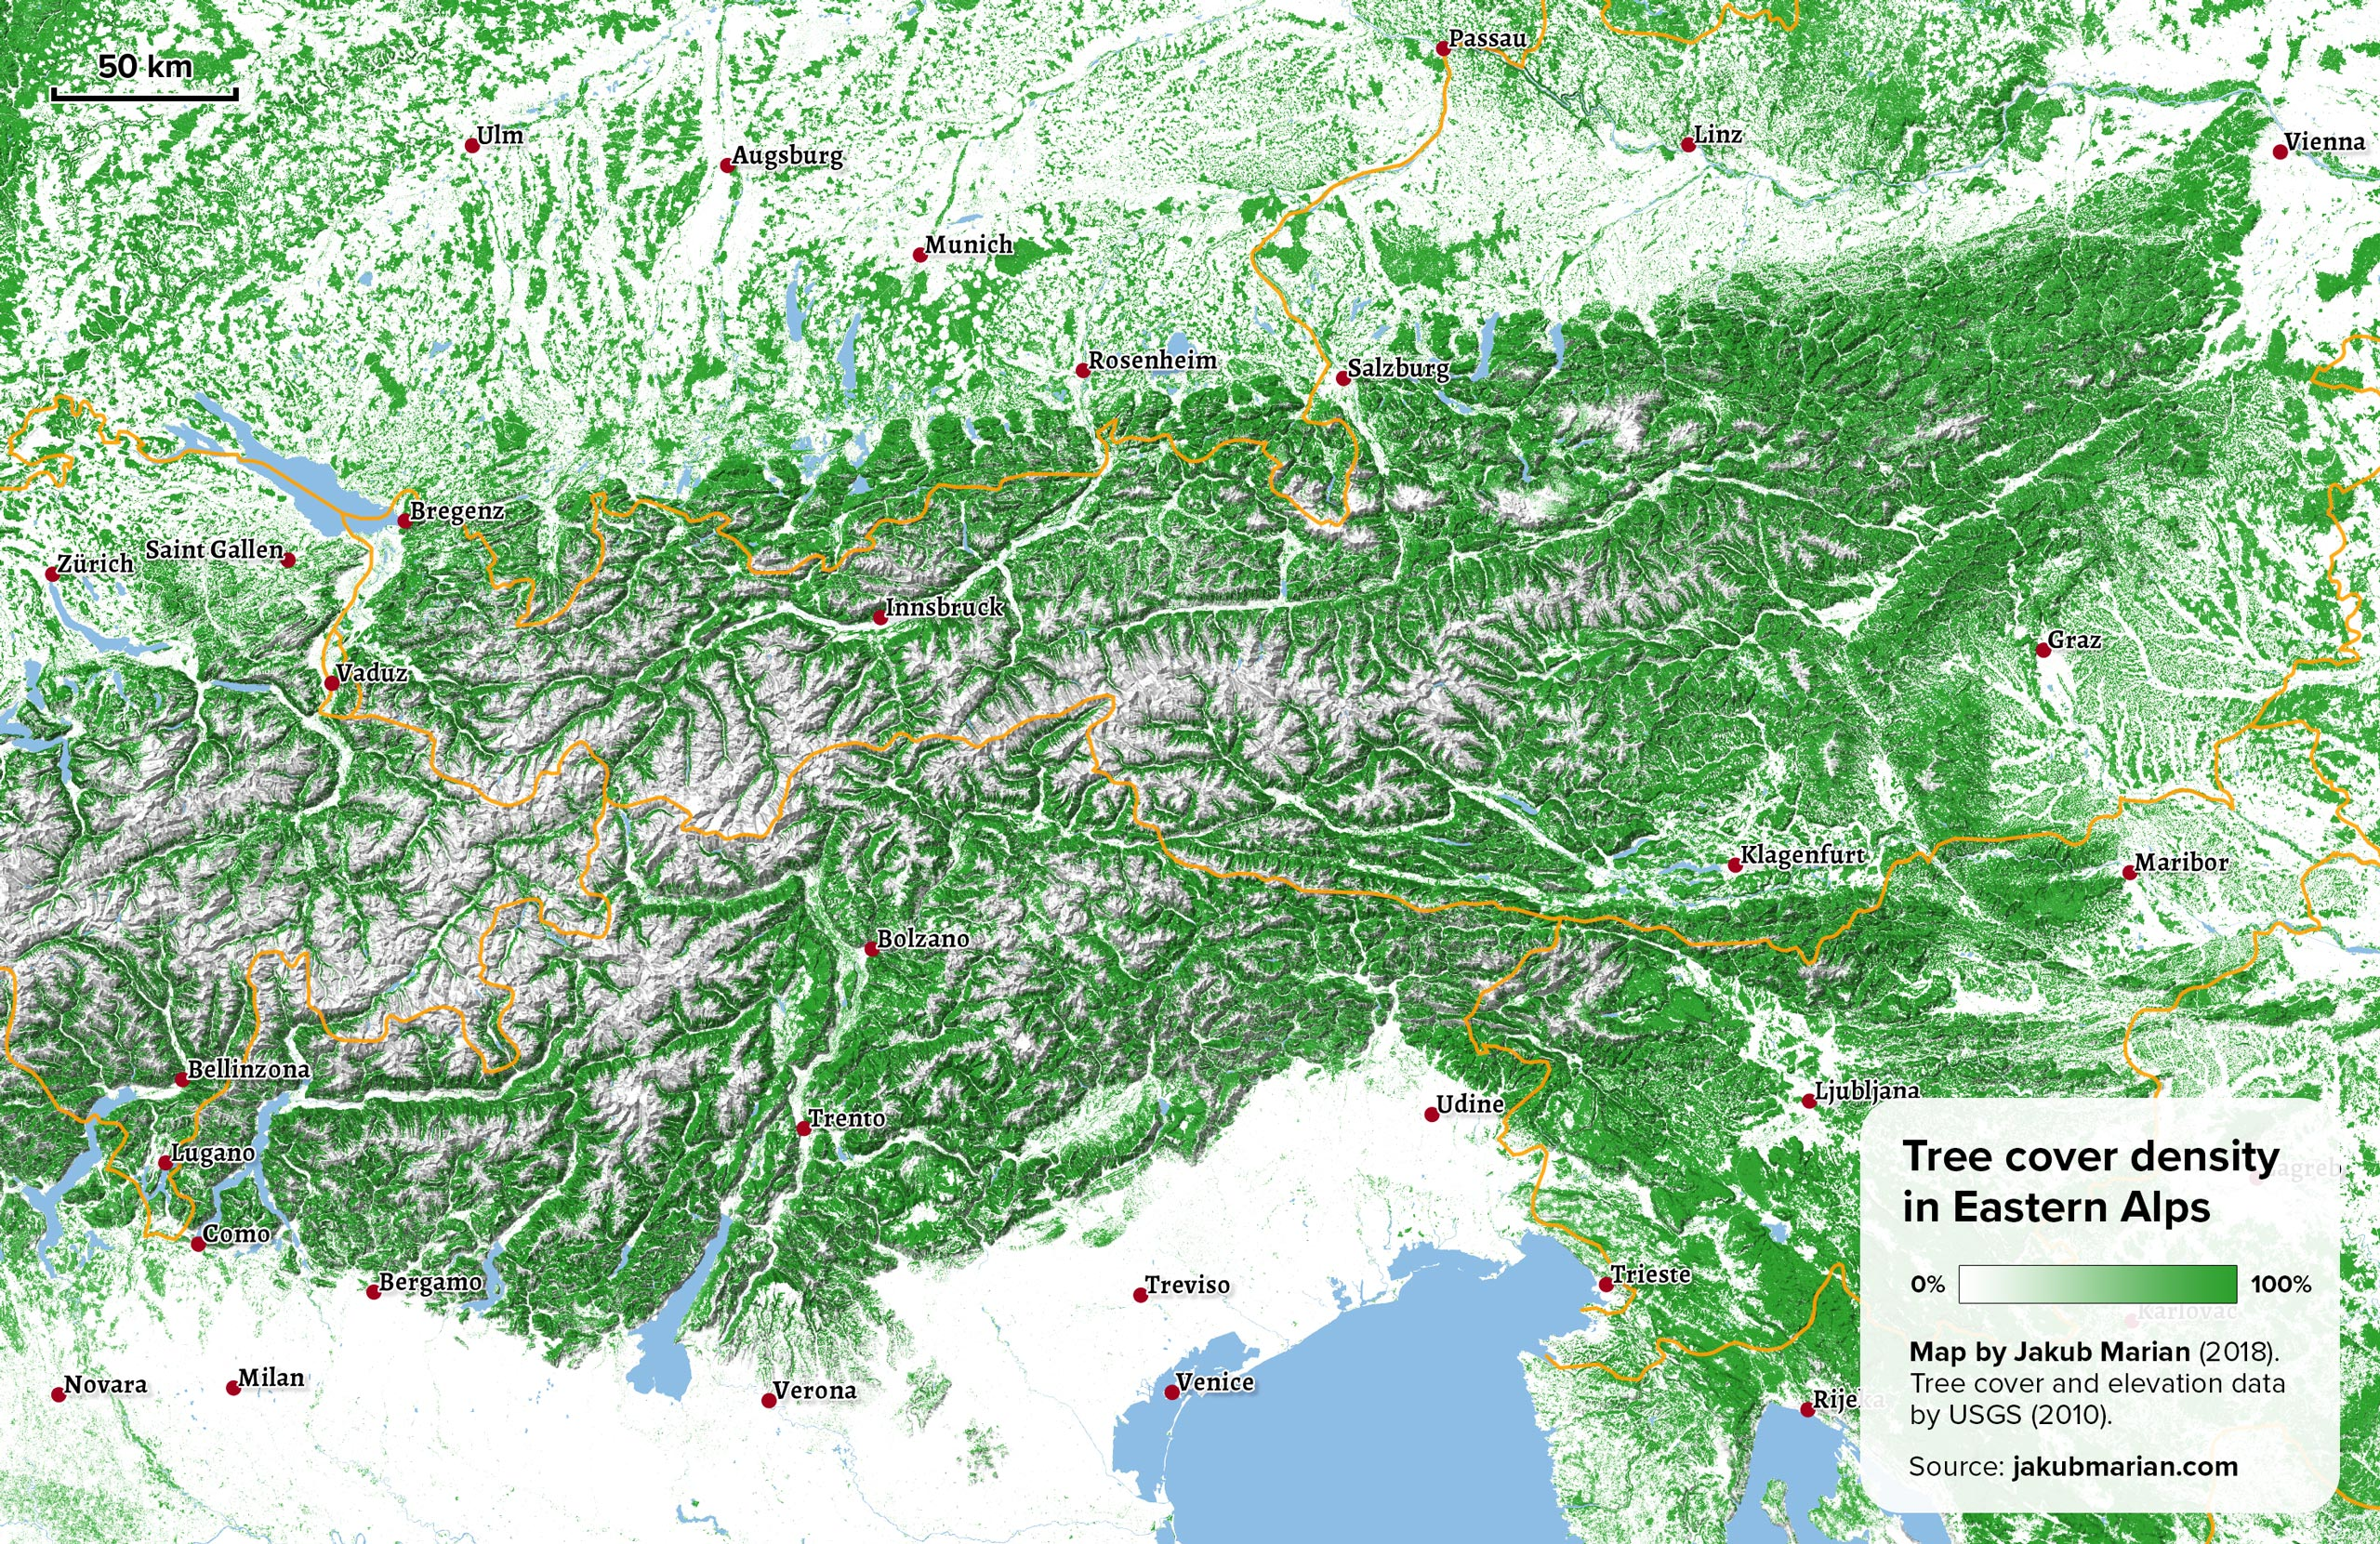 Tree cover of Eastern Alps